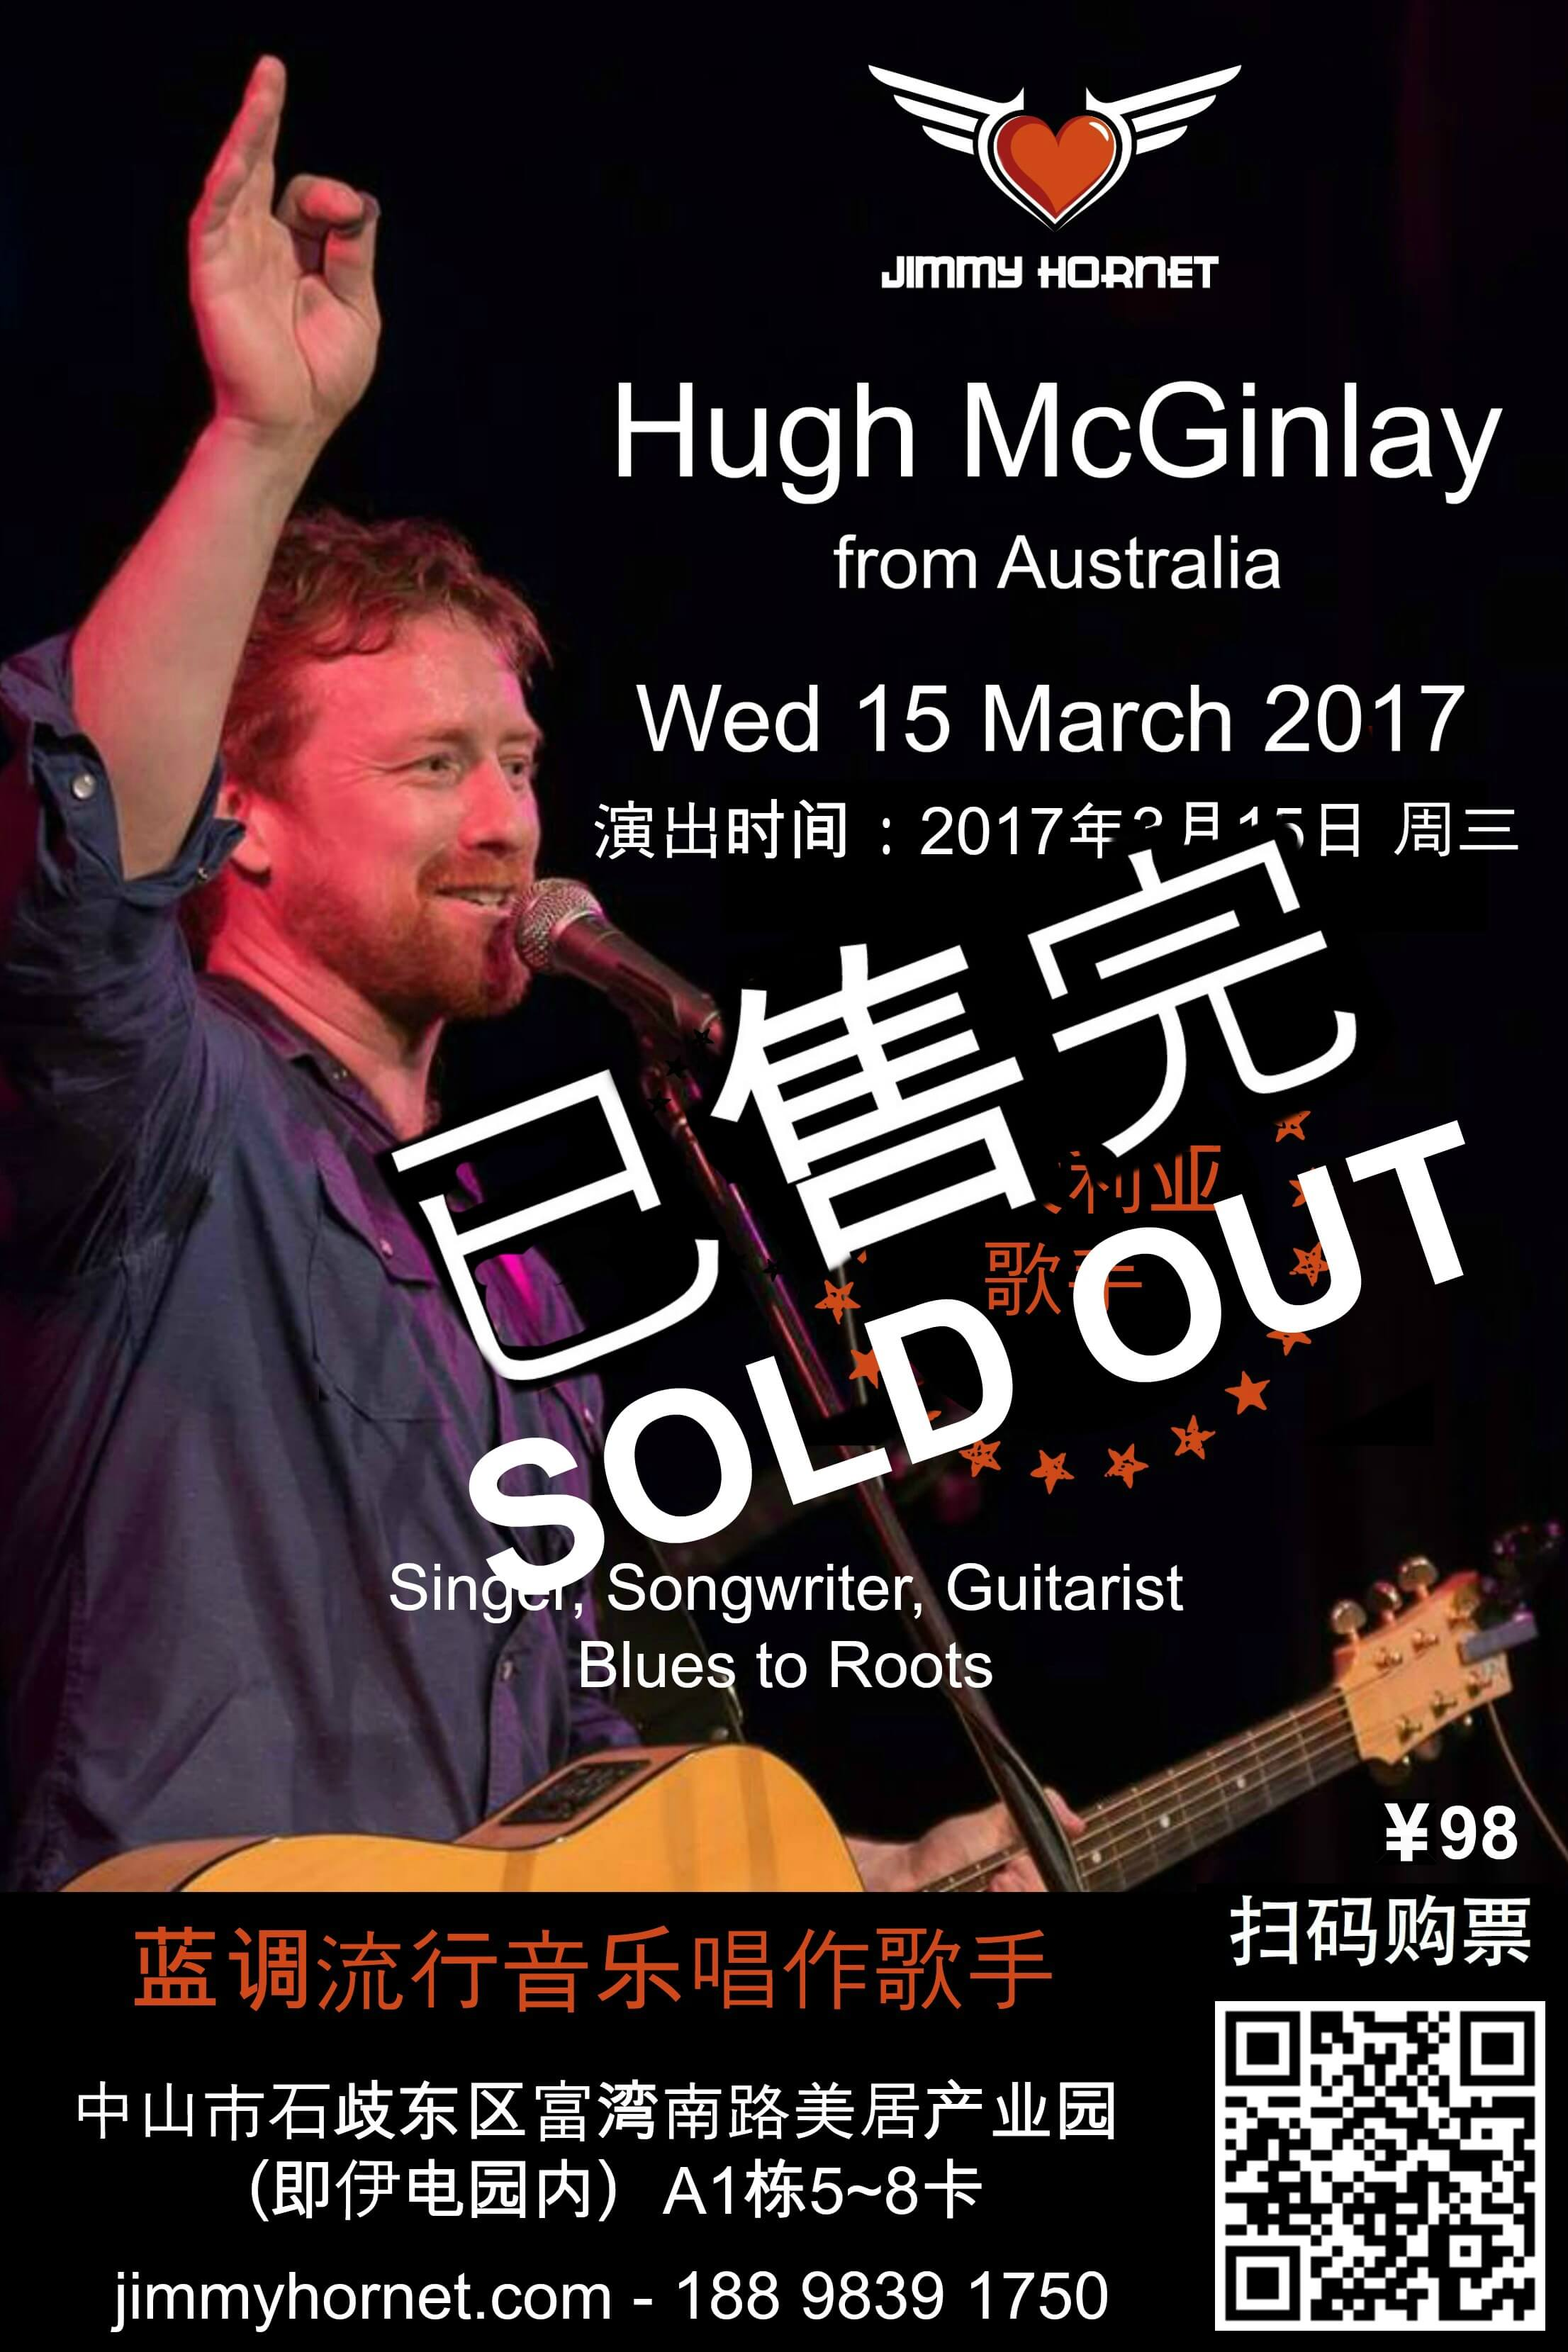 Hugh McGinlay China Tour for Jimmy Hornet